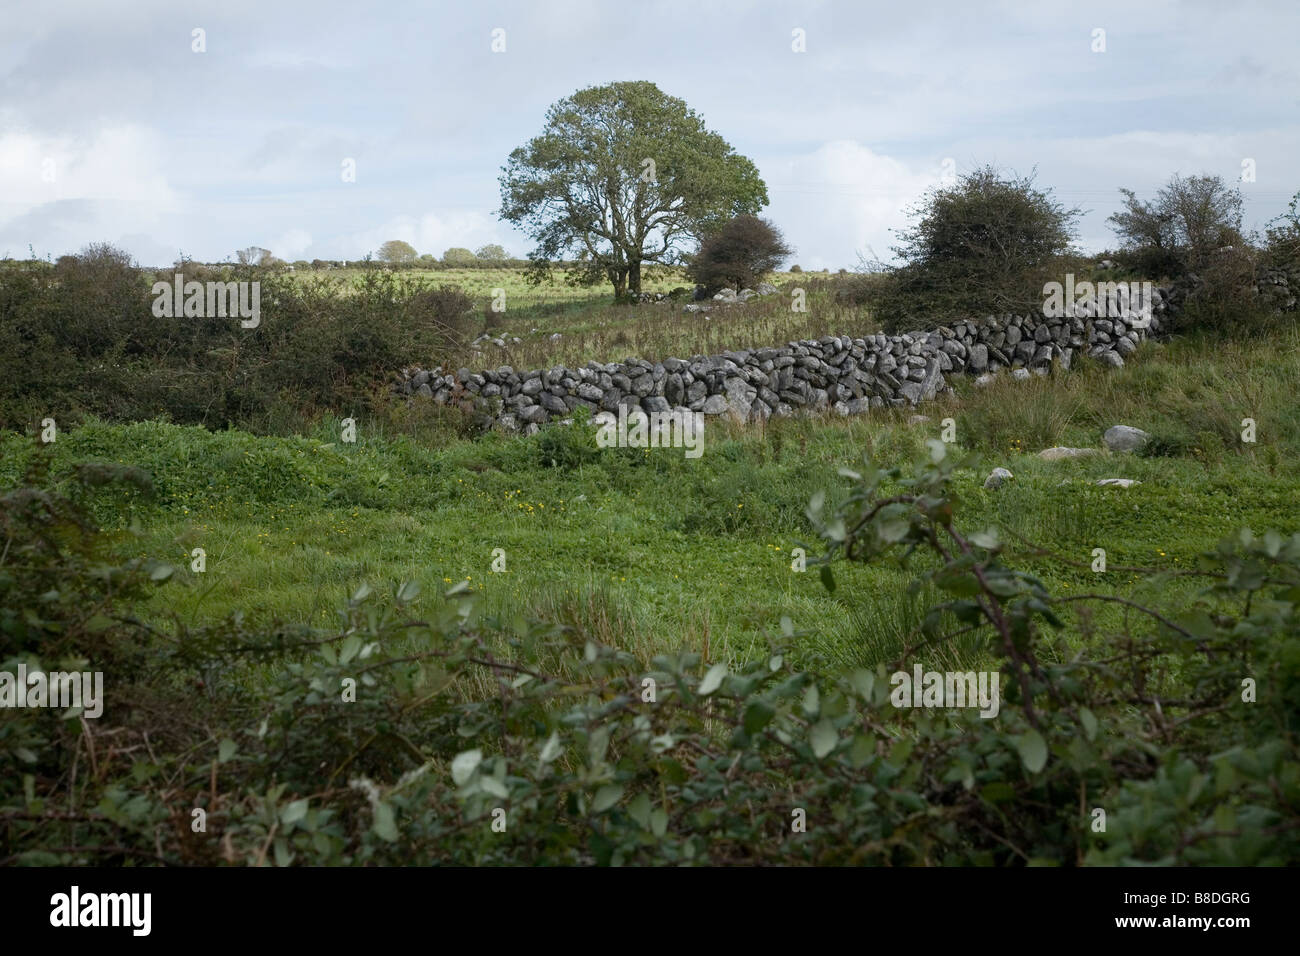 Photograph of a tree with stone walls in the Irish countryside - Stock Image